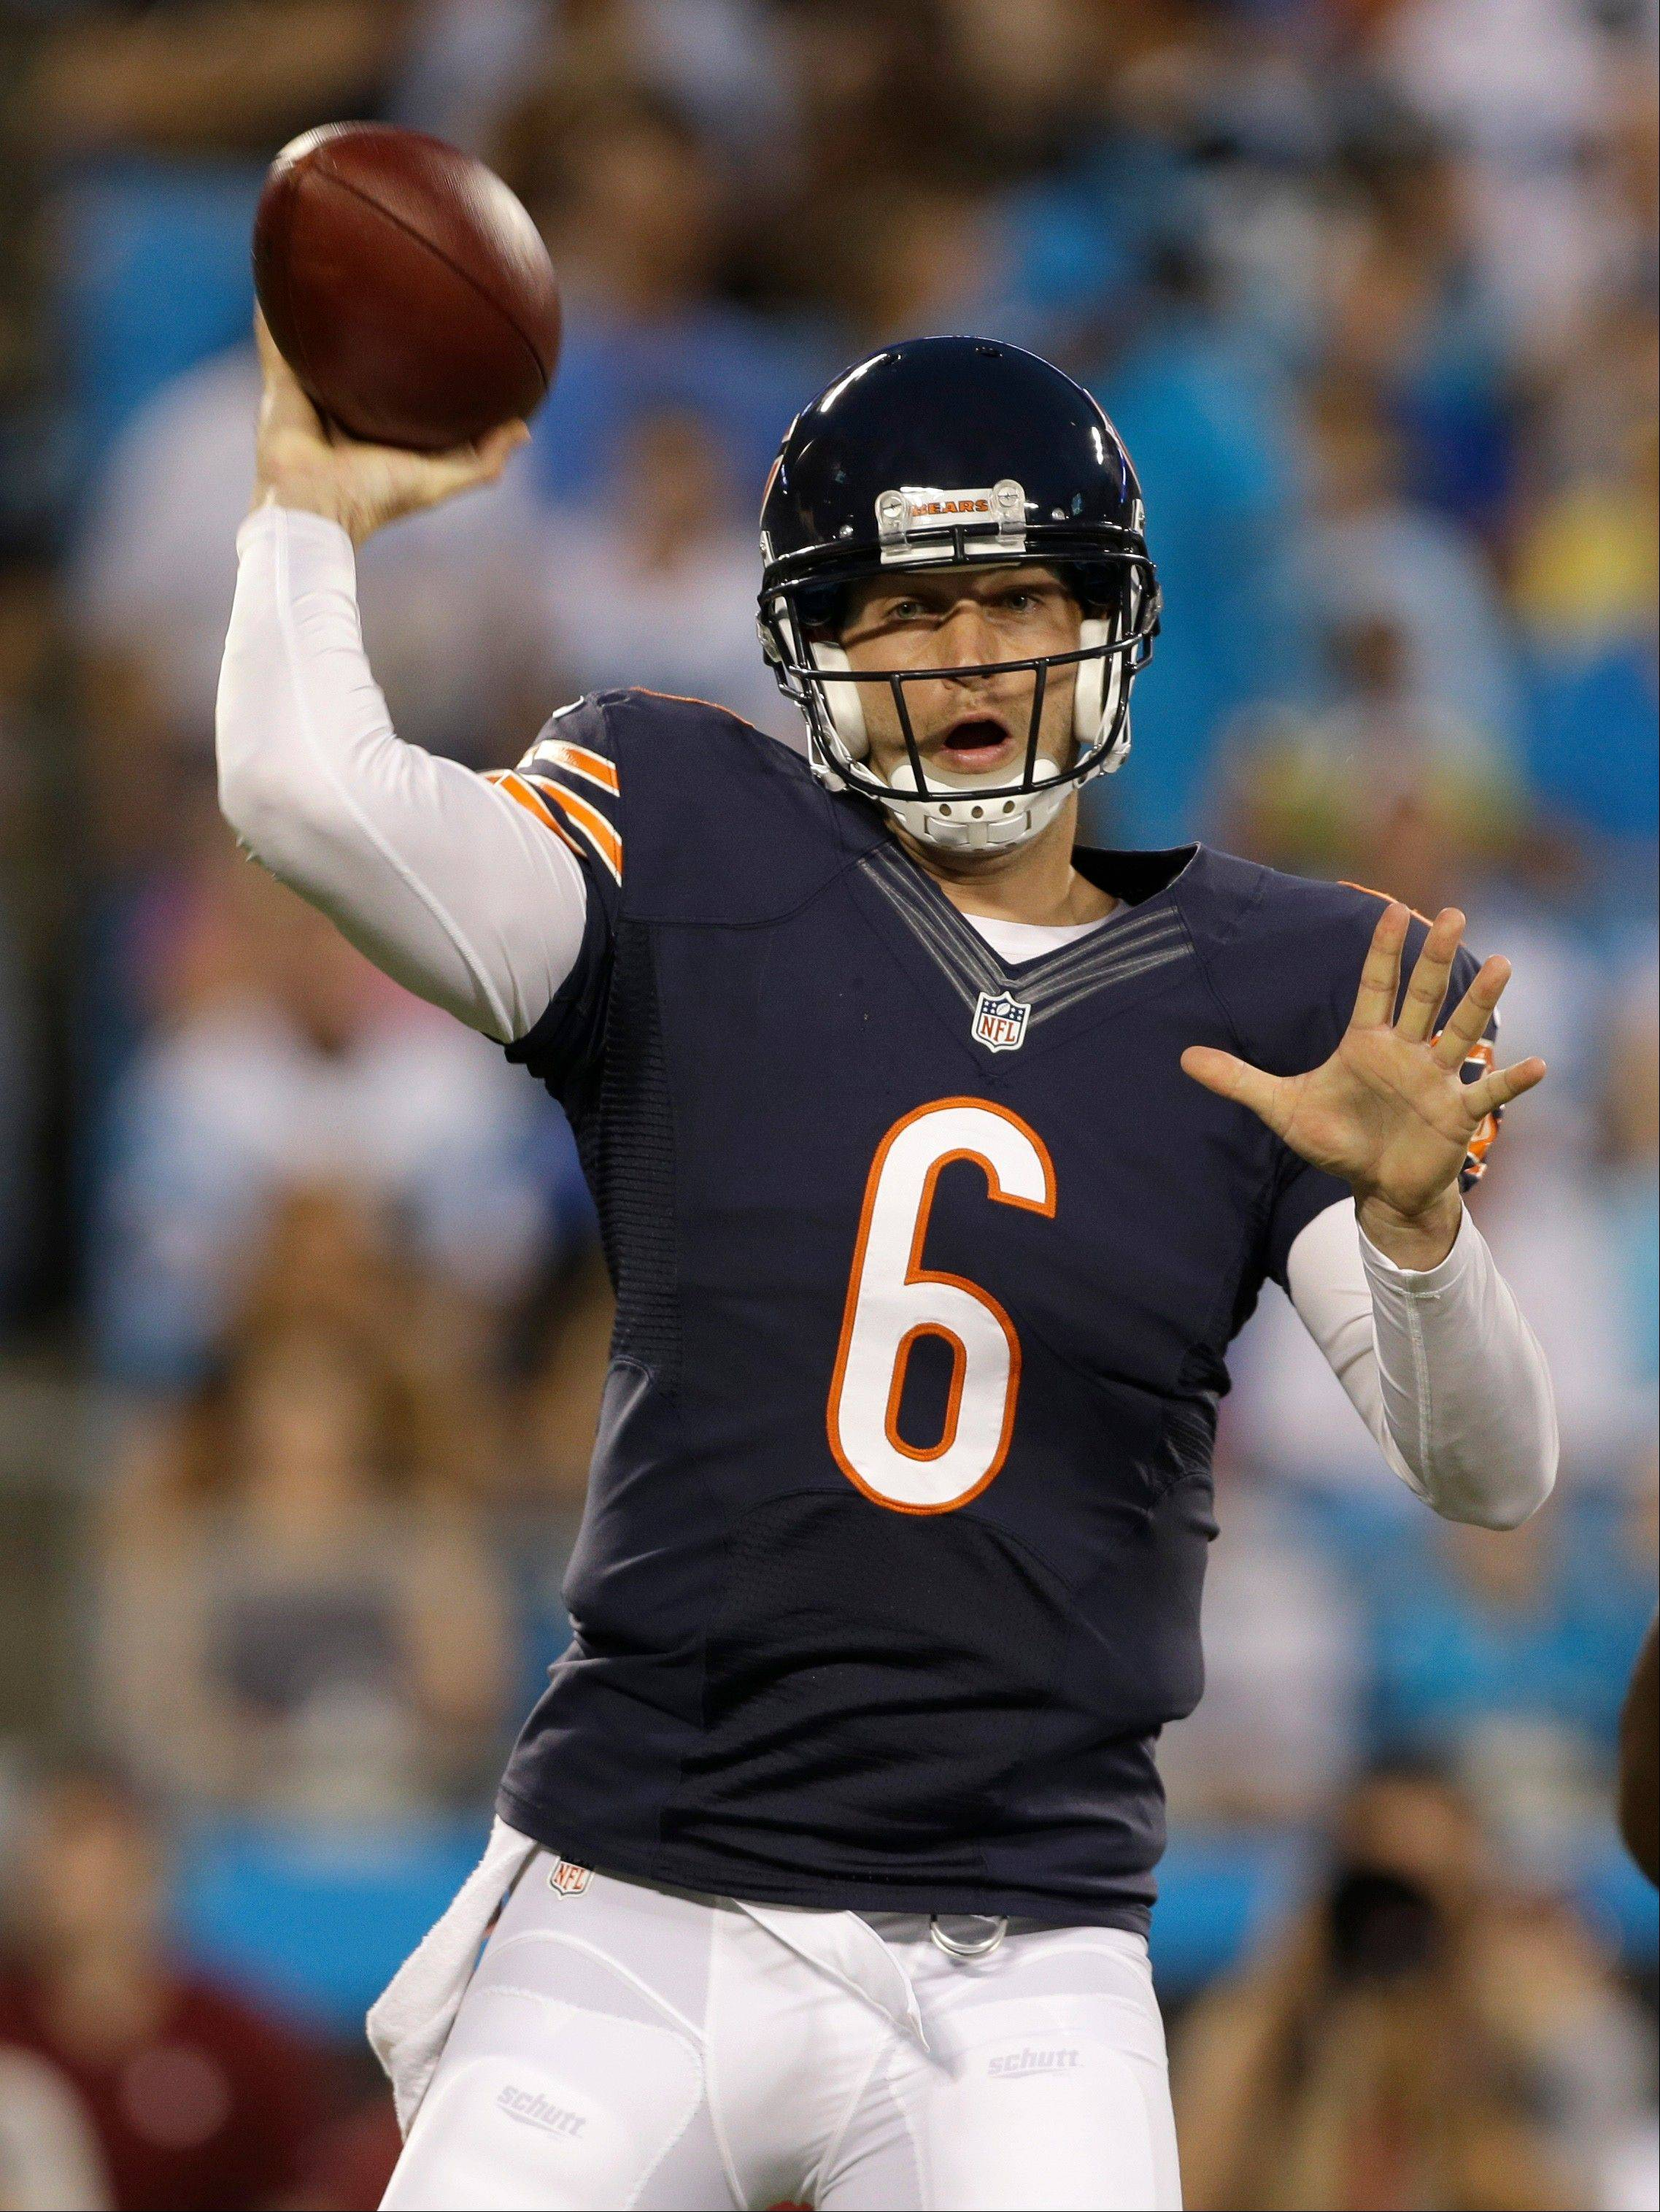 Chicago Bears quarterback Jay Cutler (6) throws a pass against the Carolina Panthers during the first half of a preseason NFL football game in Charlotte, N.C., Friday, Aug. 9, 2013.